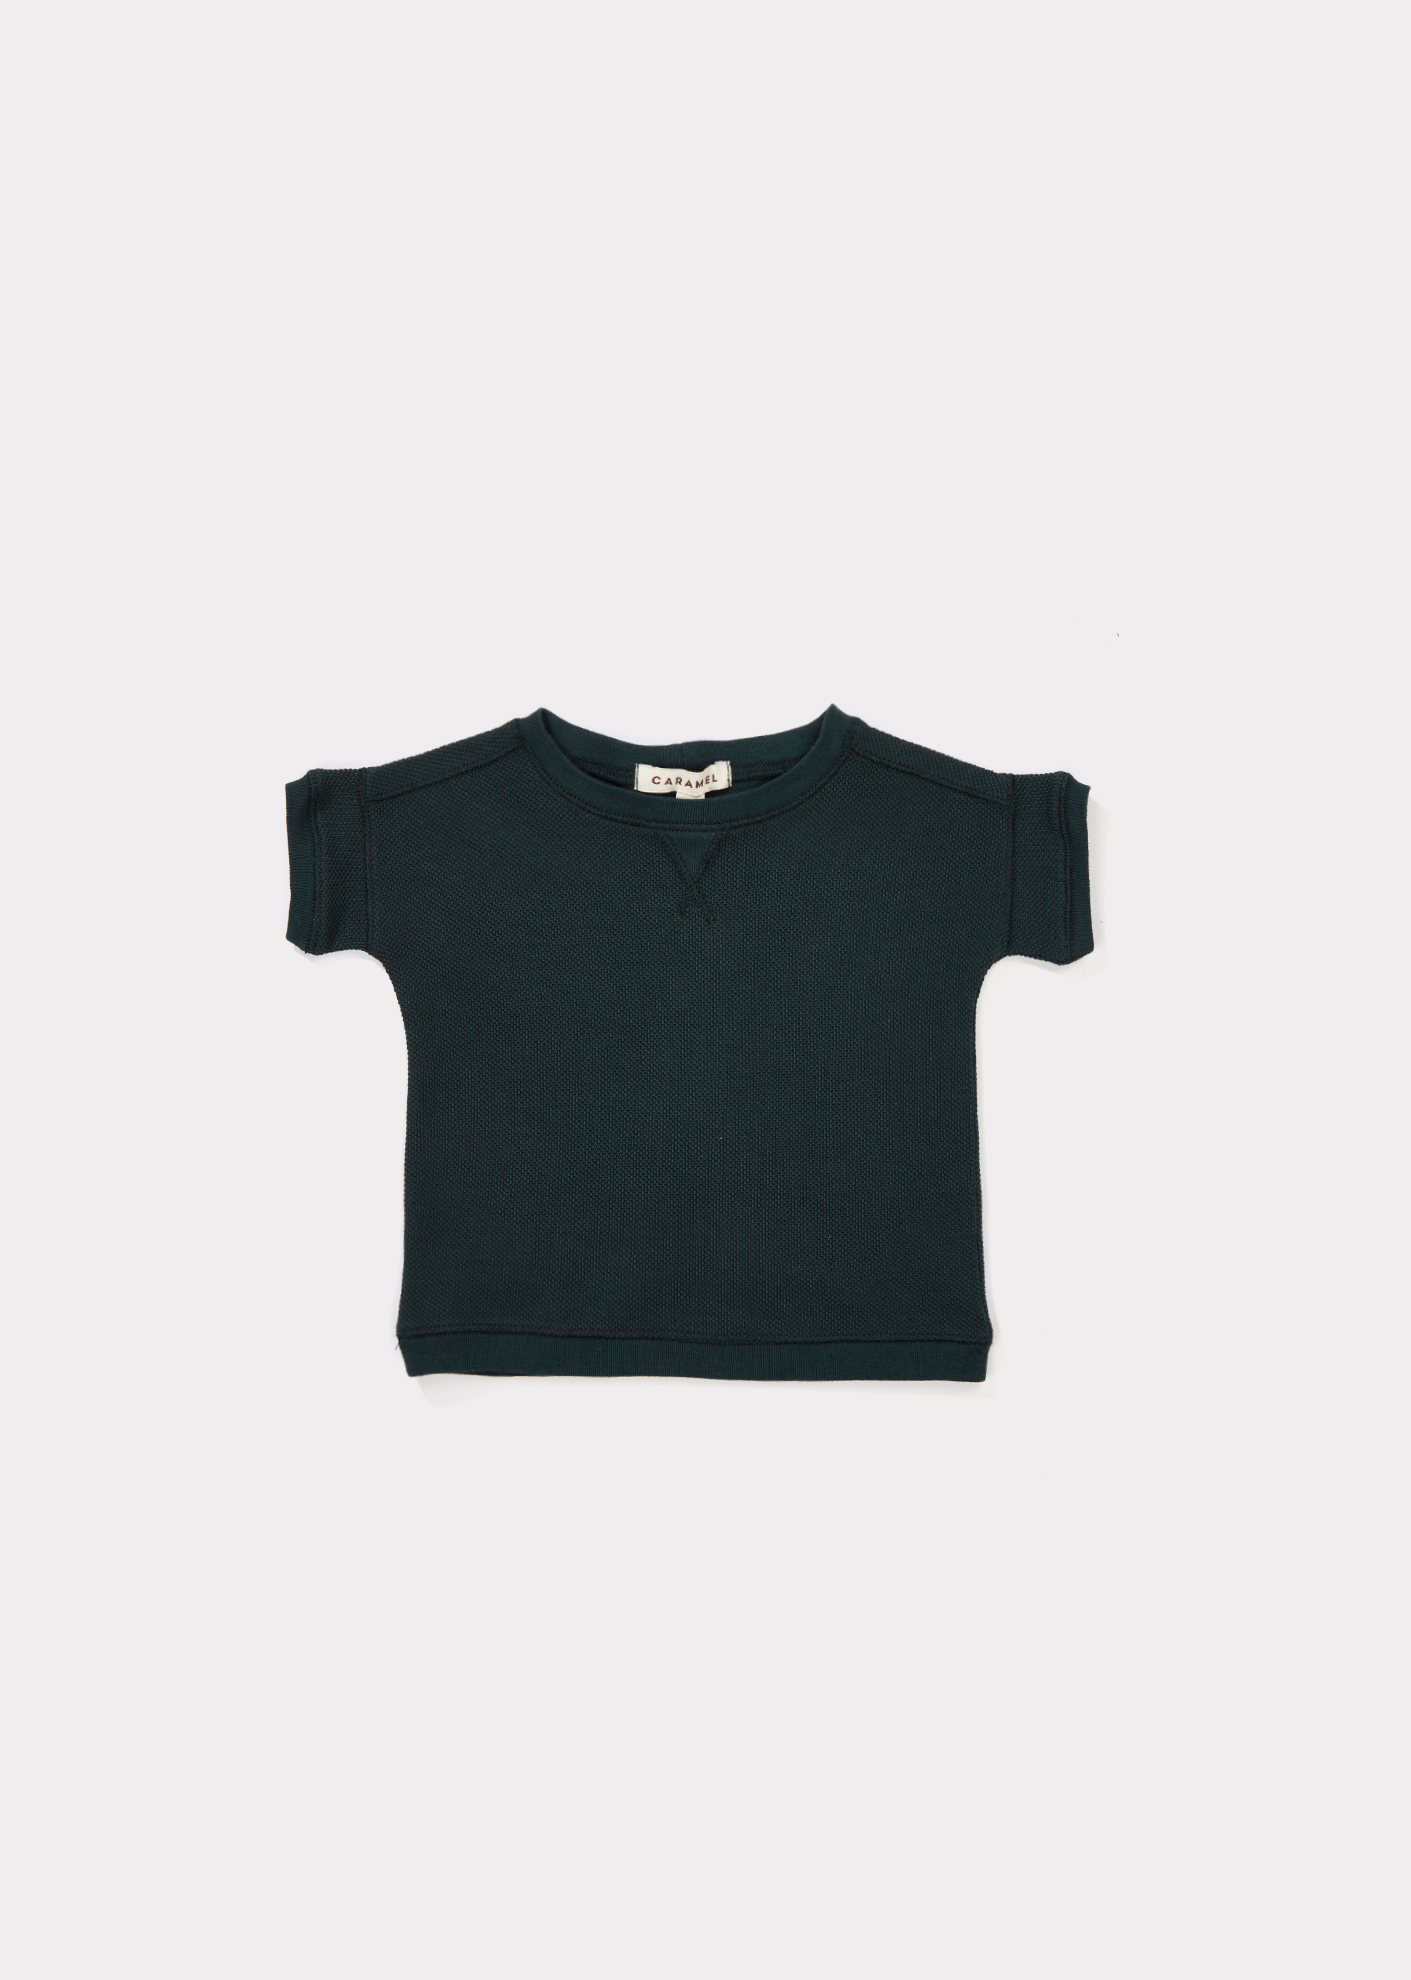 Caramel  - KEZAR BABY T-SHIRT FOREST GREEN - Clothing